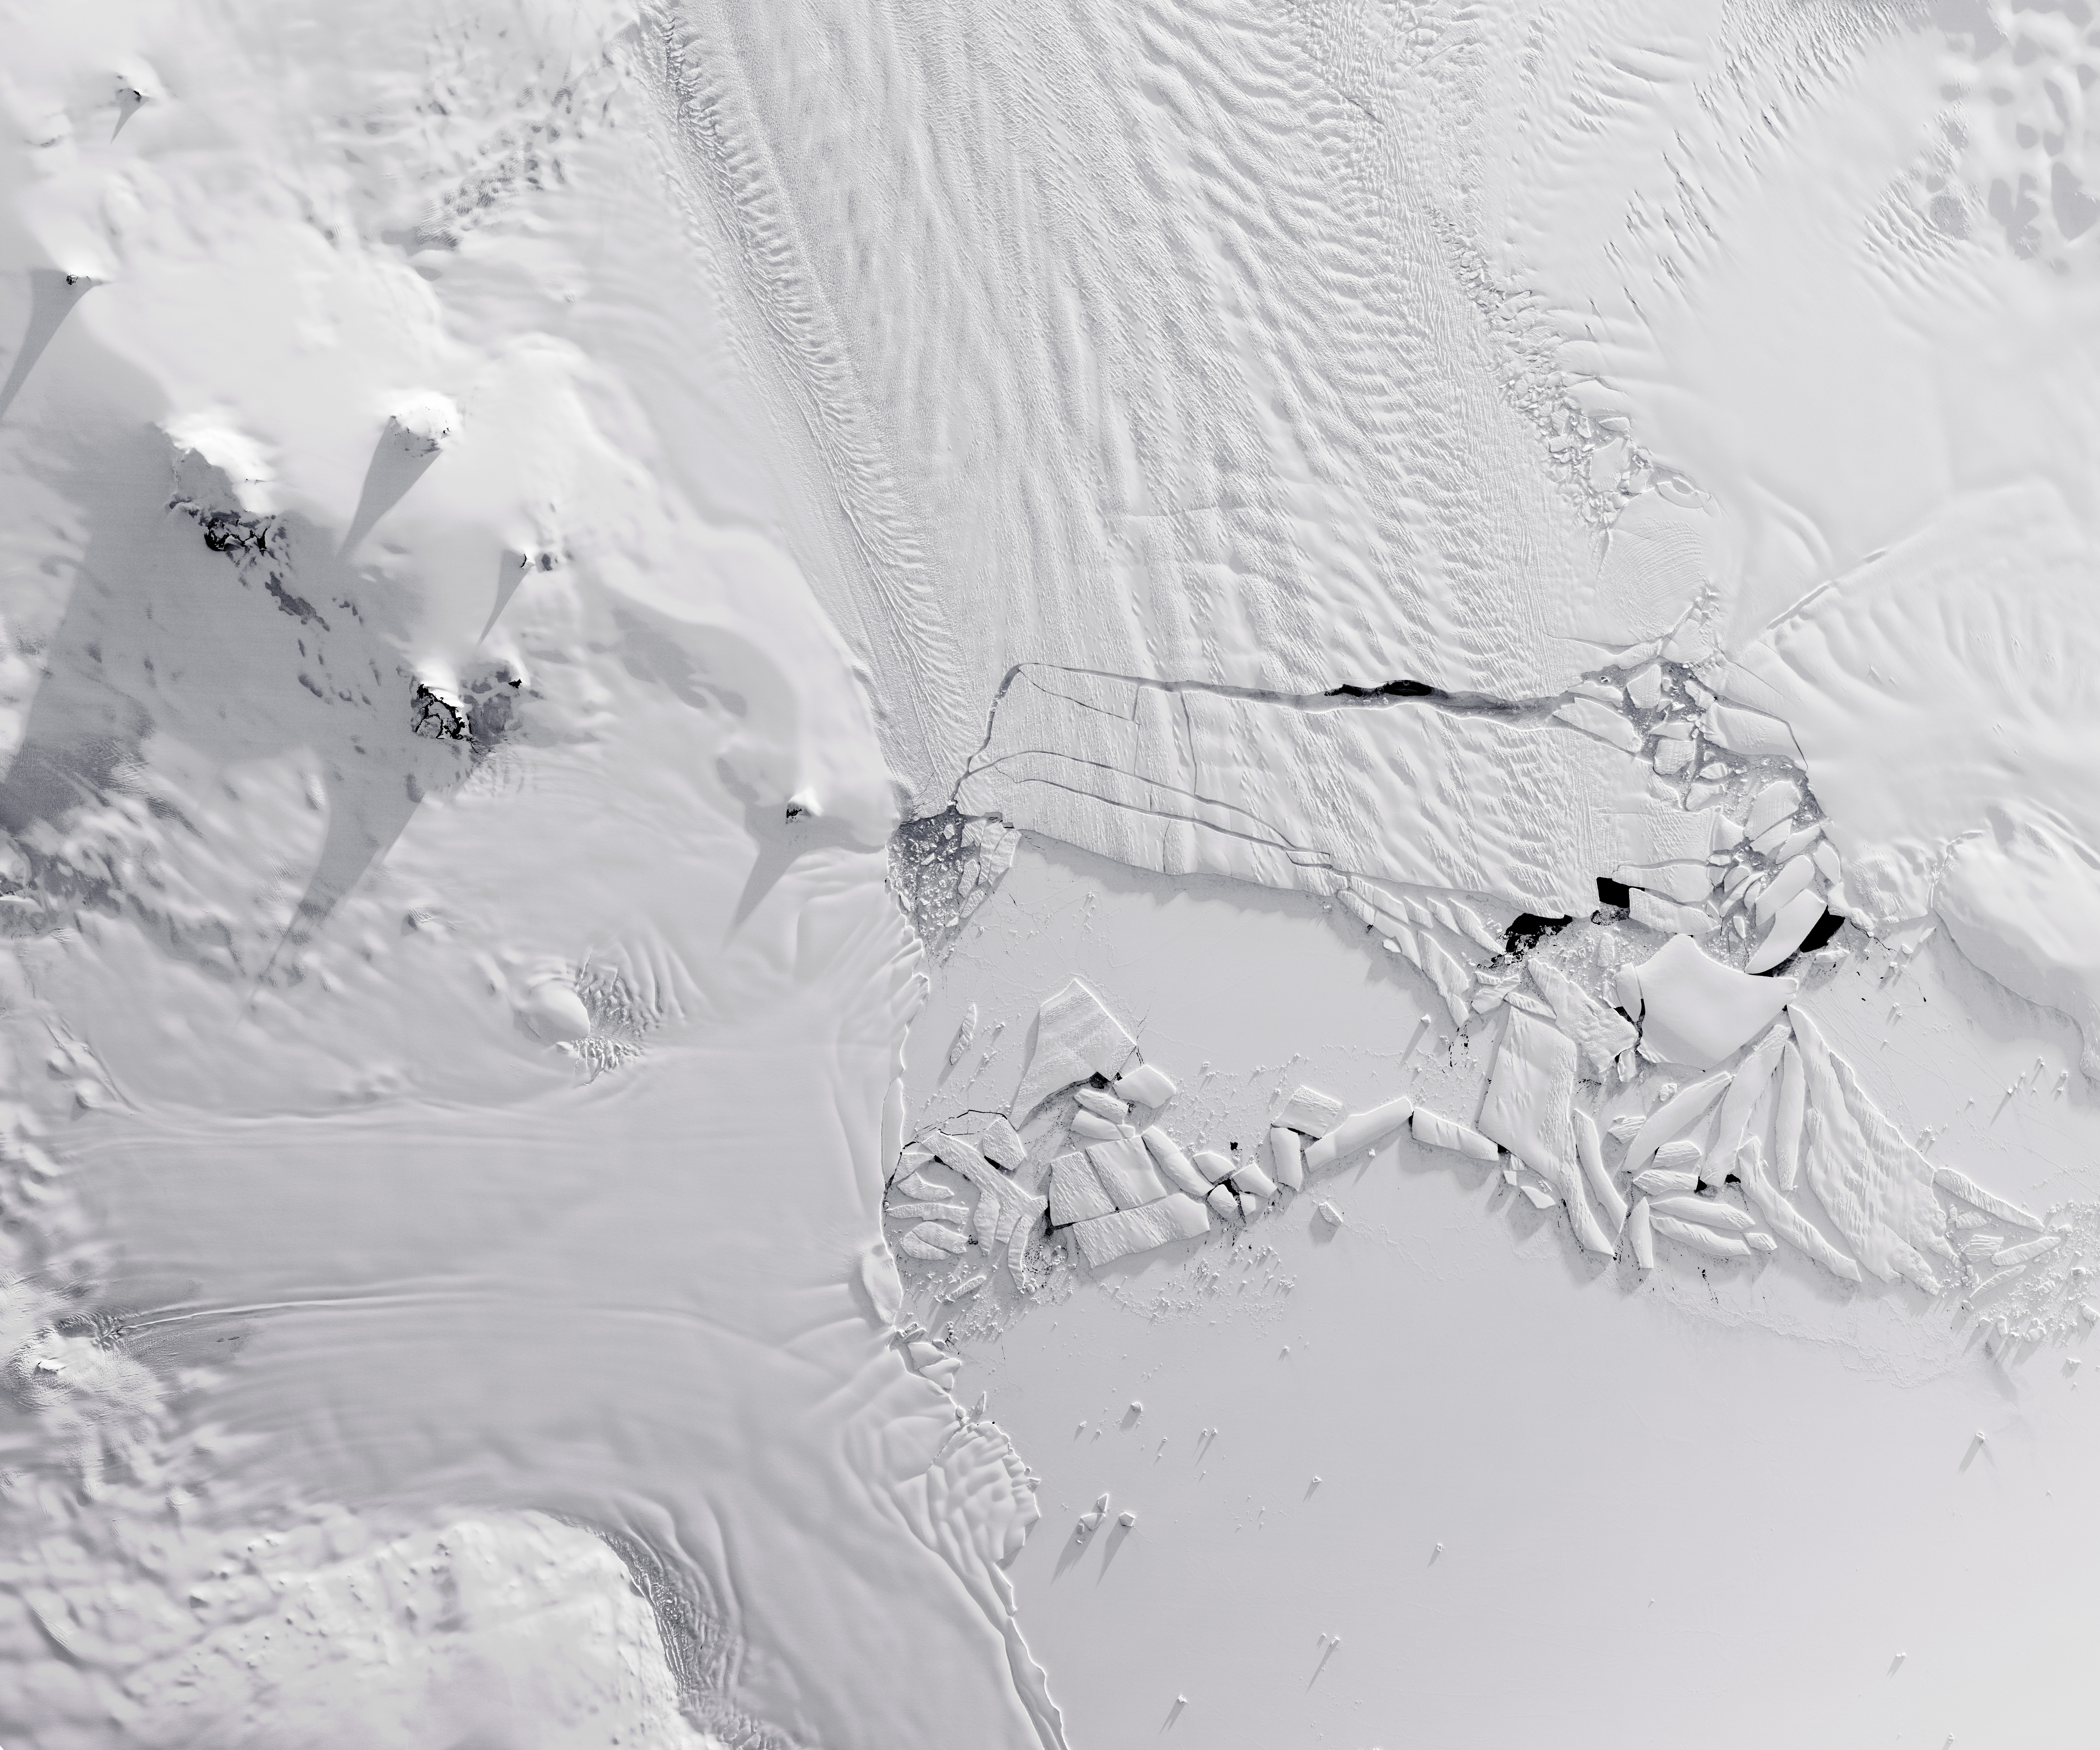 Pine Island Glacier after calving iceberg